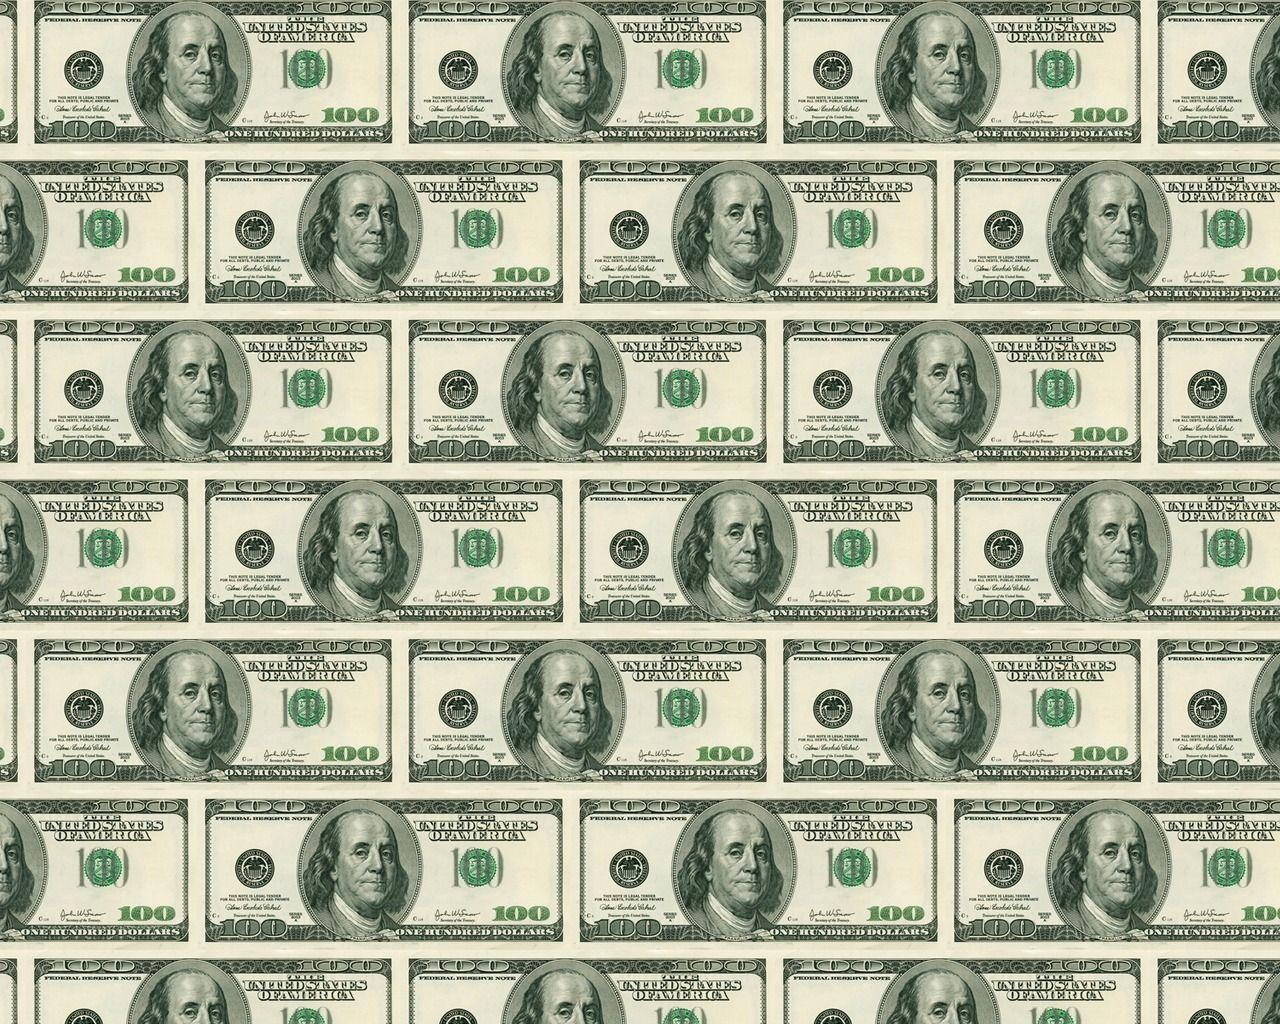 100 Dollars bill wallpapers